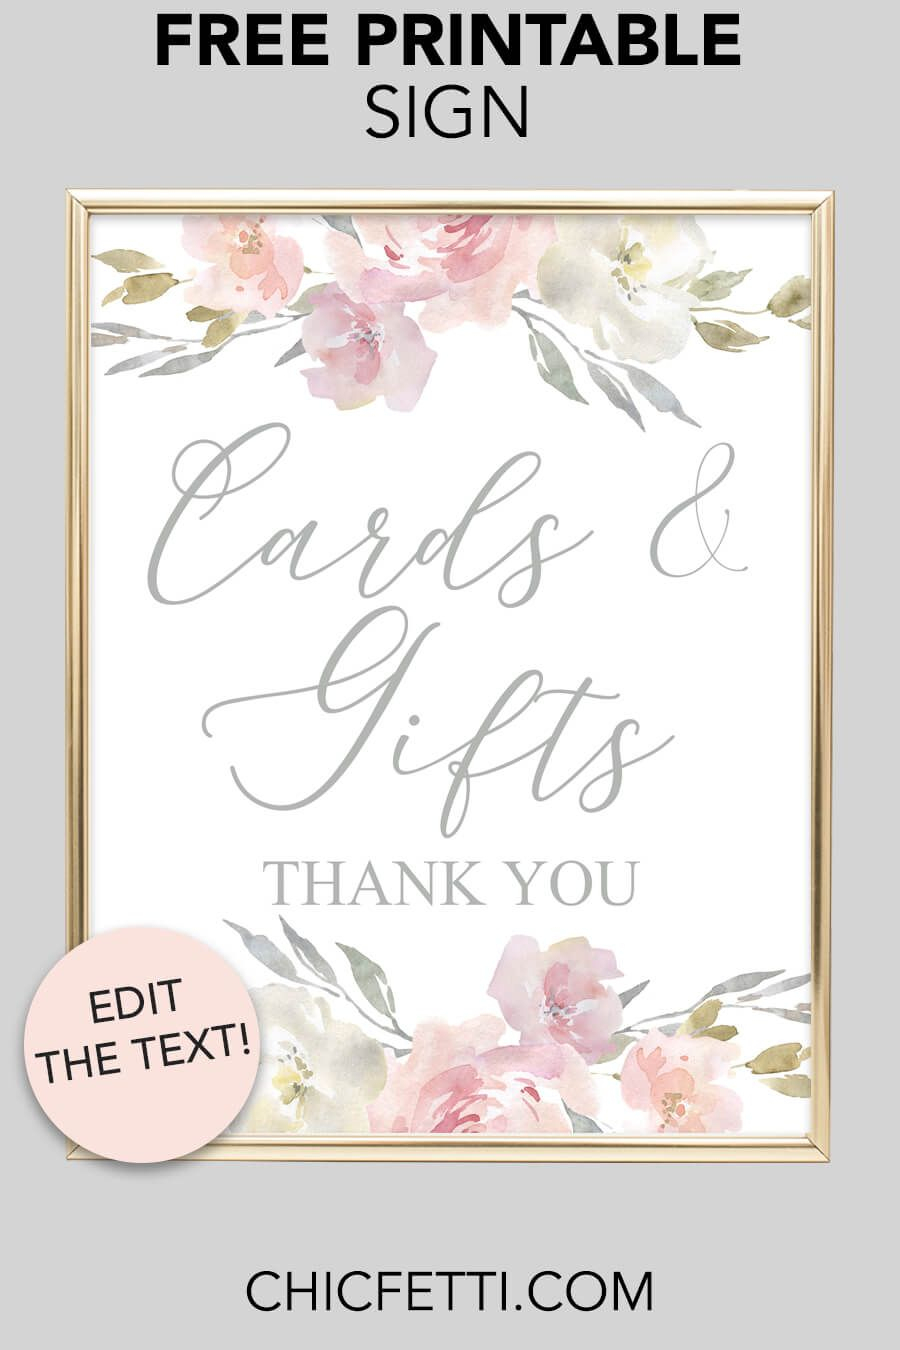 Cards & Gifts Printable Sign (Blush Floral   Free Printables   Free - Cards Sign Free Printable